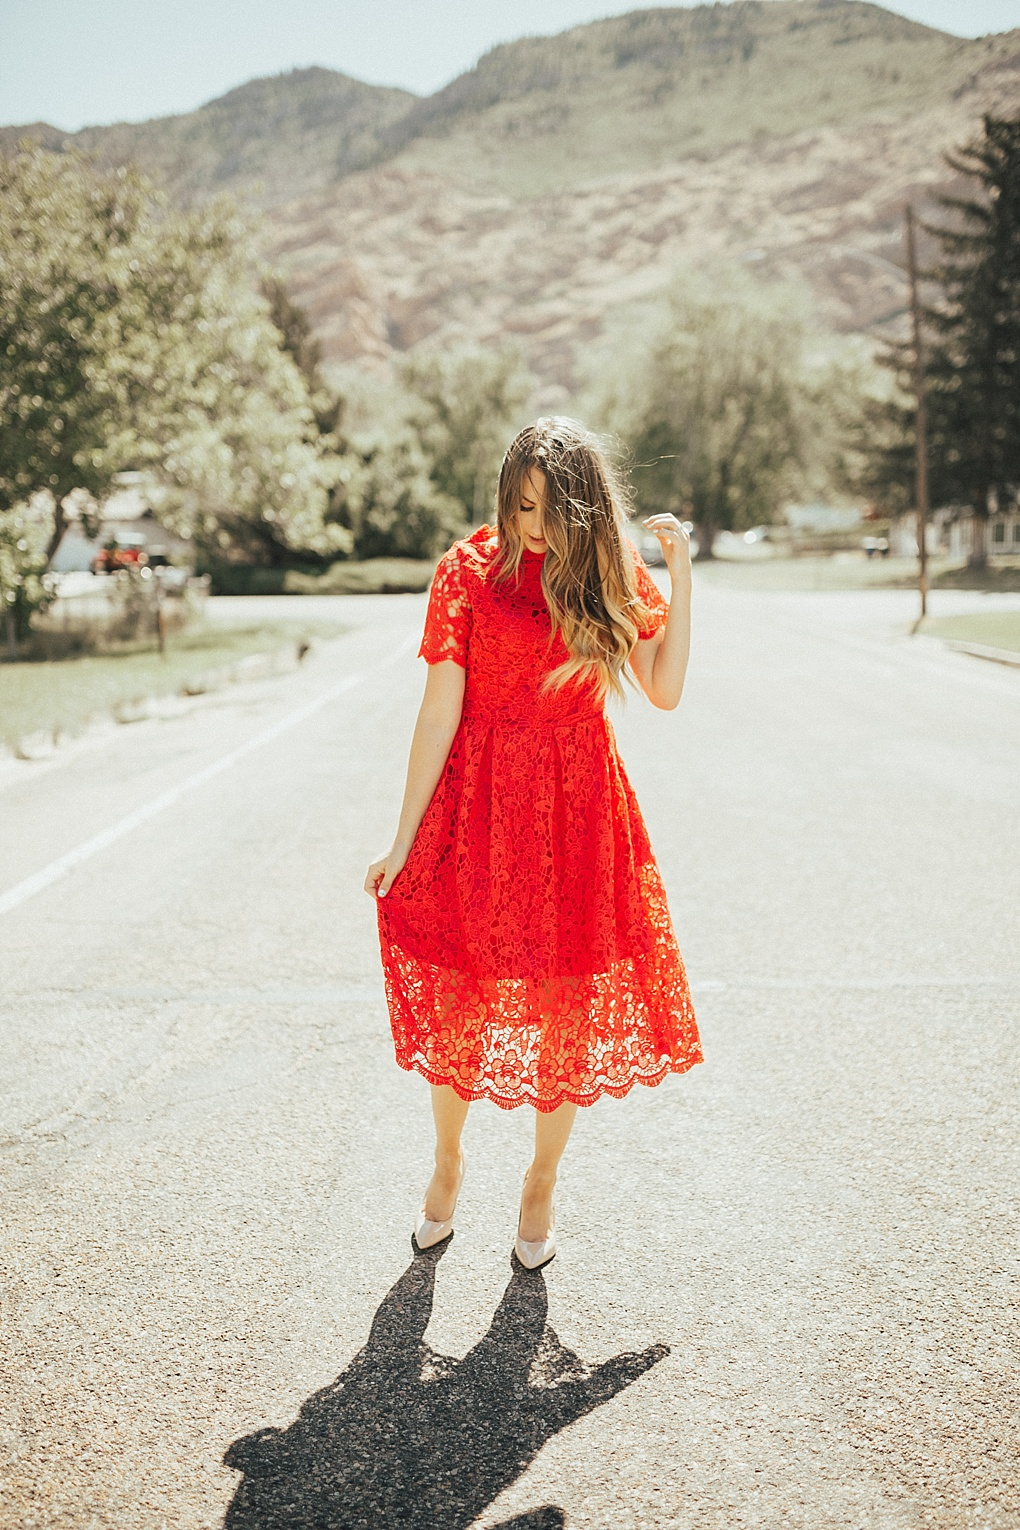 5 Church Outfits for Christmas Sunday by Utah fashion blogger Dani Marie